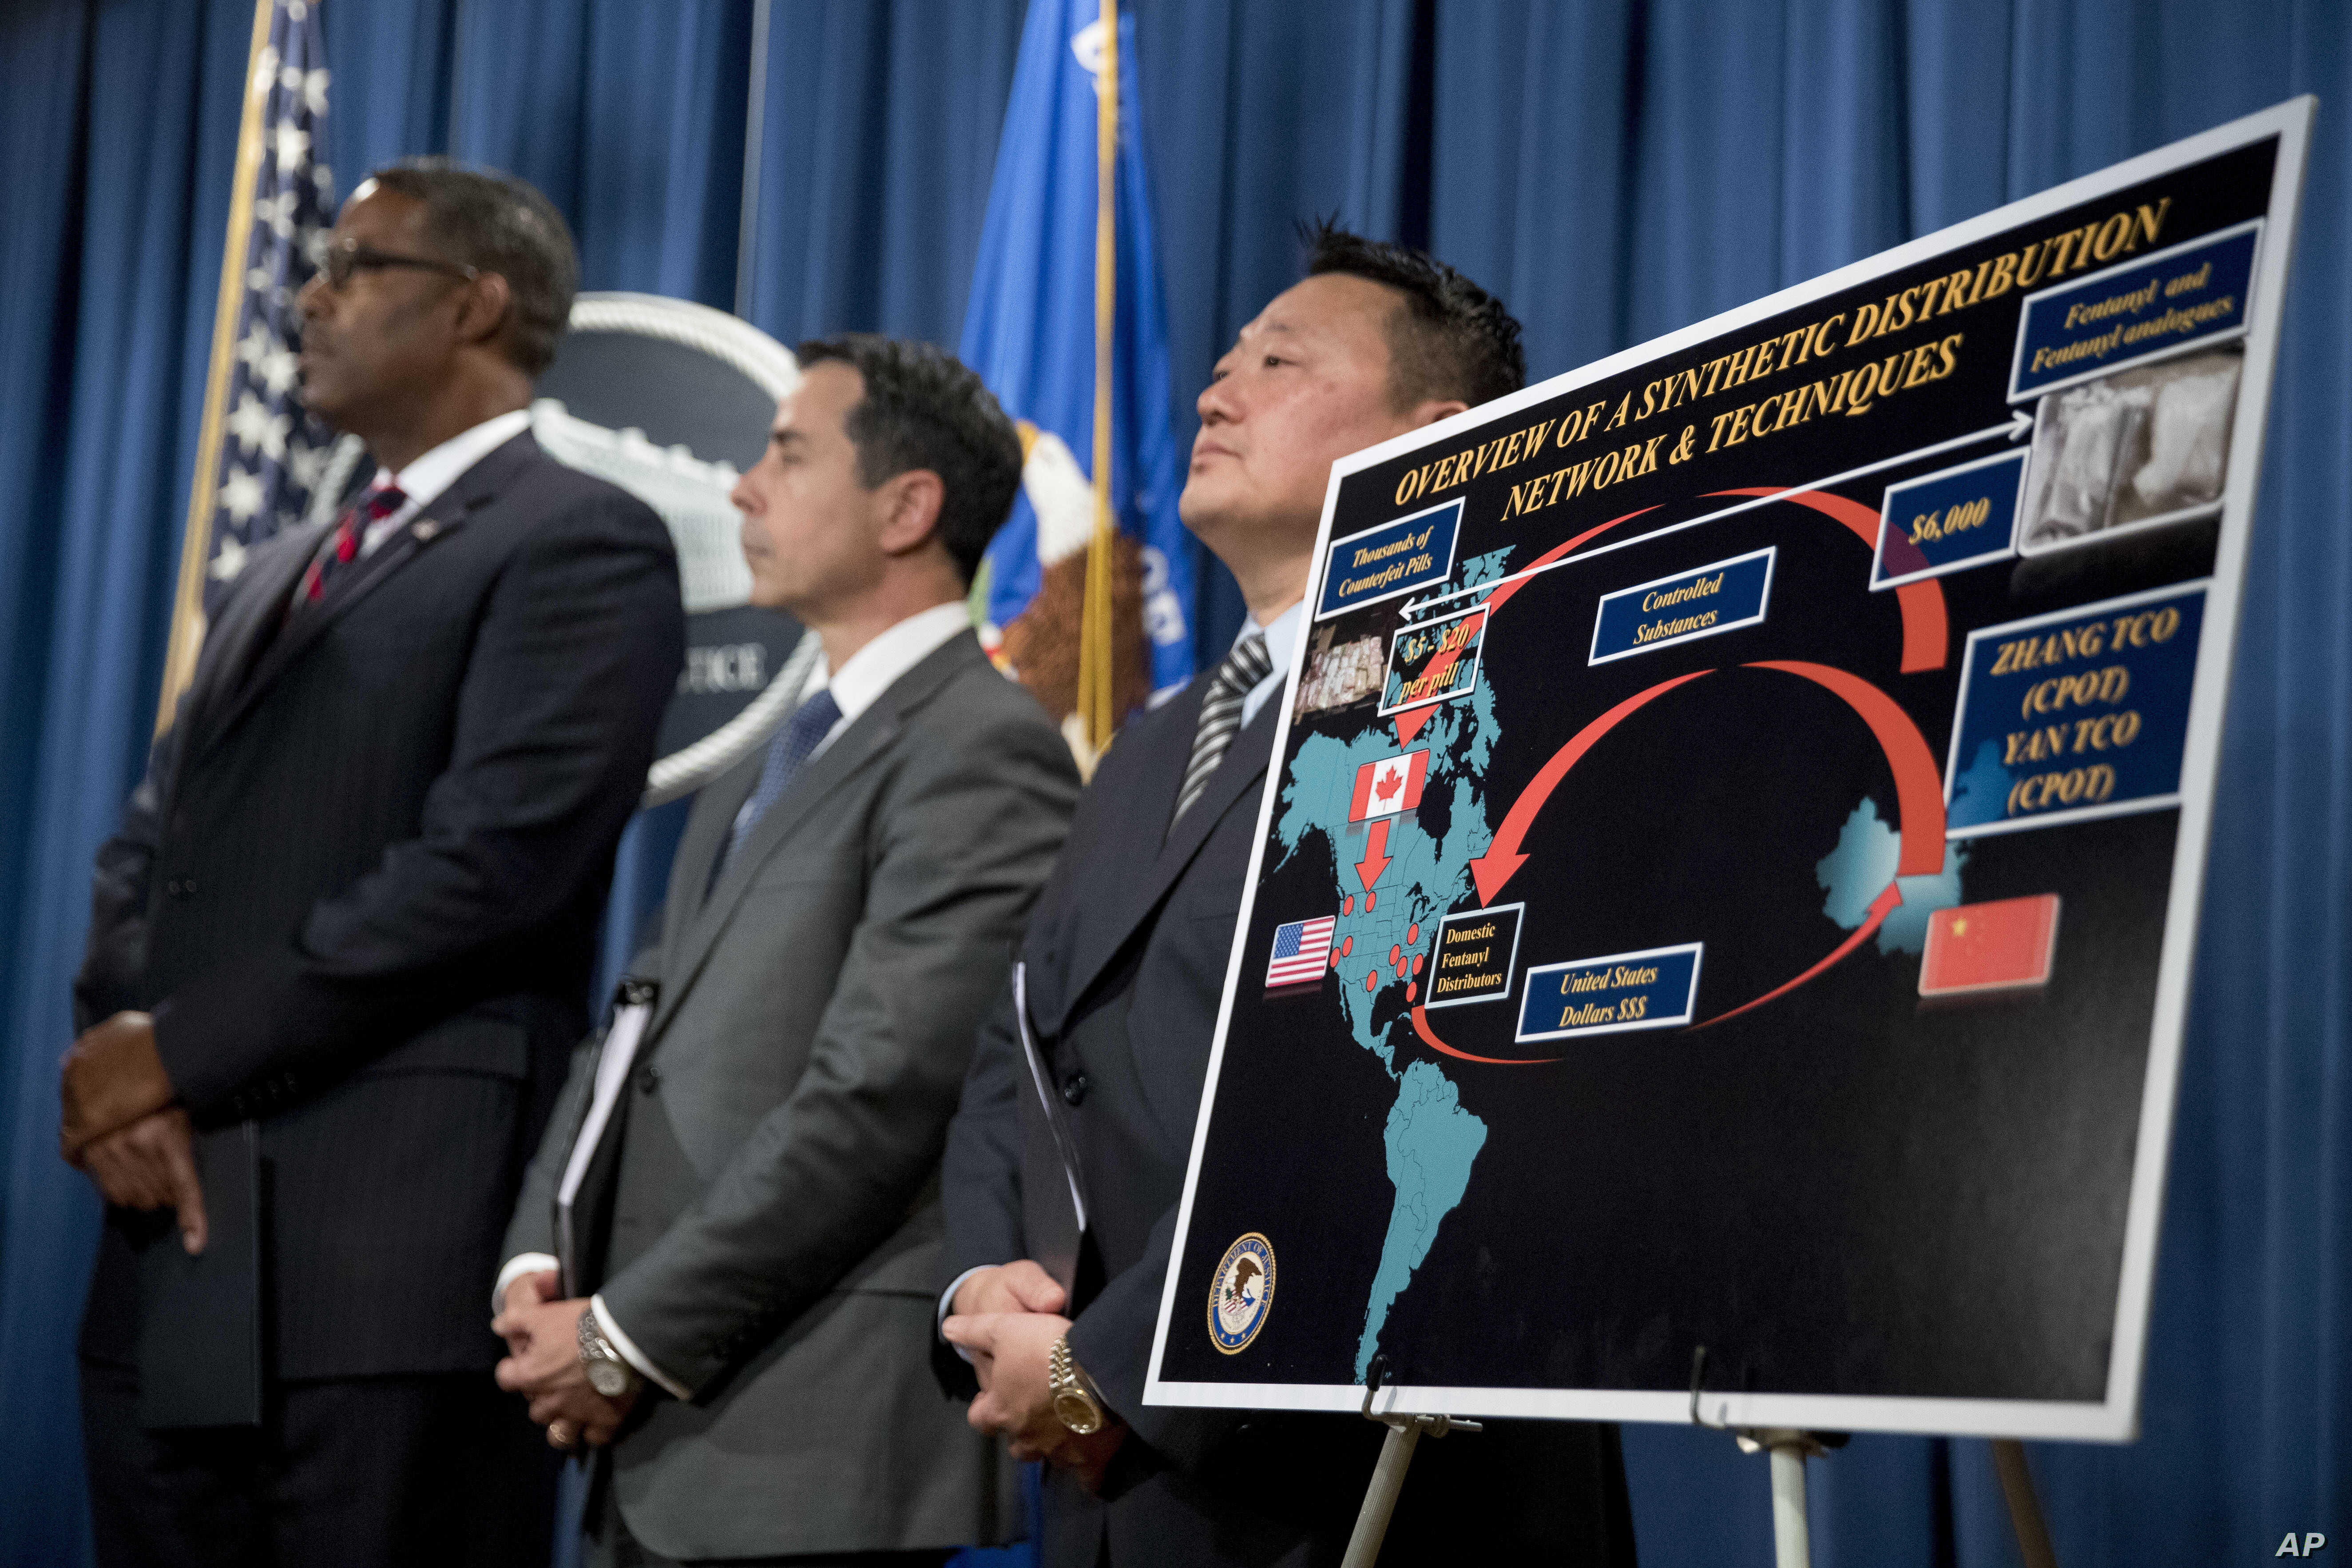 Law enforcement officials appear before a drug distribution poster during a news conference at the Justice Department in Washington, Oct. 17, 2017, to announce the indictments of two Chinese fentanyl trackers.